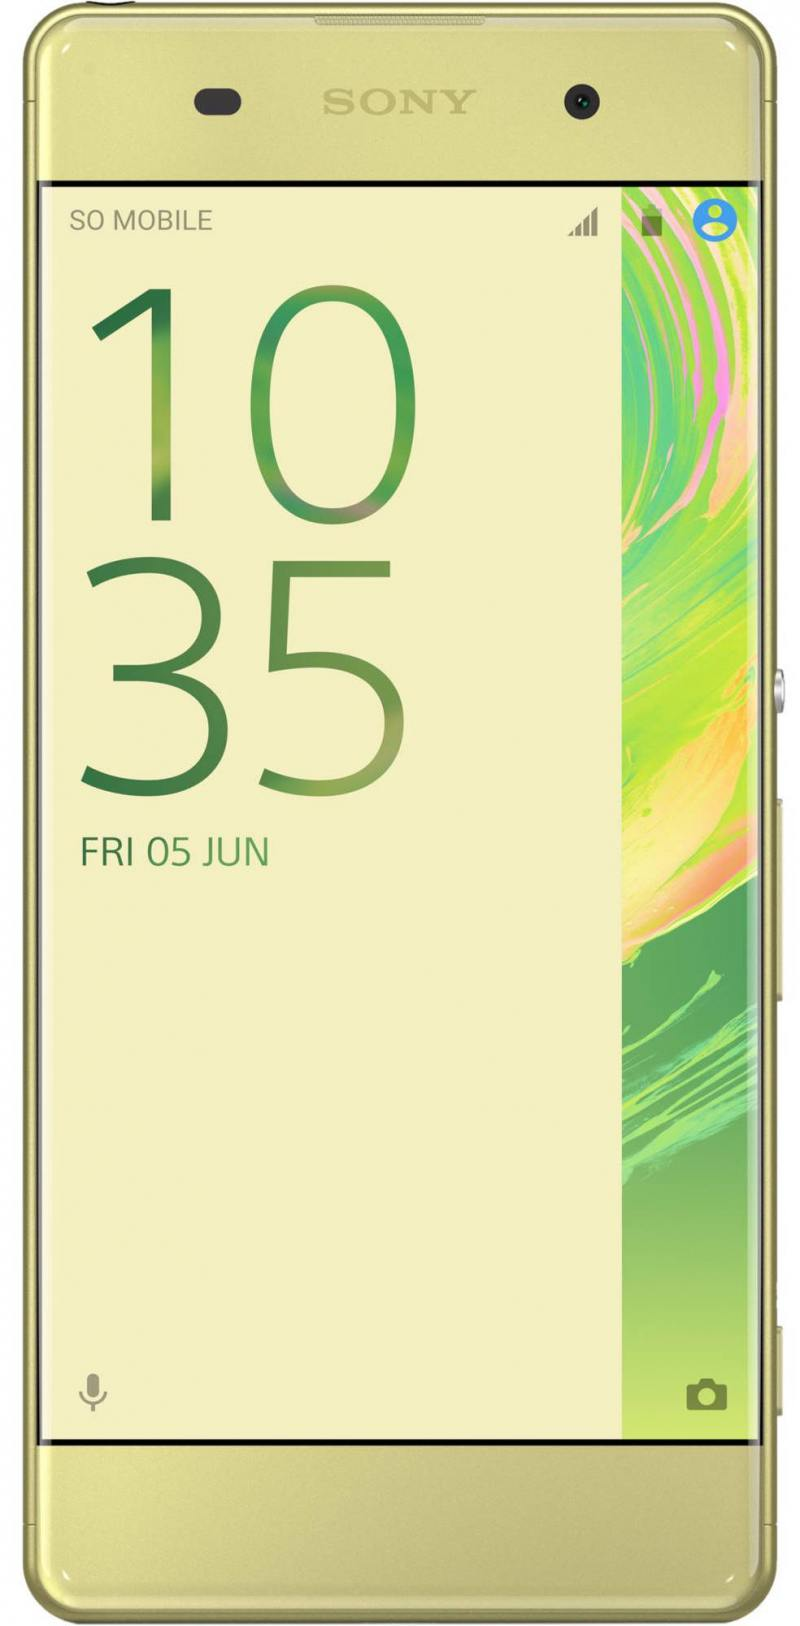 Смартфон SONY Xperia XA Dual (F3112) Lime Gold MediaTek MT6755/2 Гб/16 Гб/5 (1280x720)/DualSim/3G/4G/BT/Android 6.0 смартфон sony xperia x lime gold android 6 0 marshmallow msm8956 1800mhz 5 0 1920x1080 3072mb 32gb 4g lte [f5121lime gold]